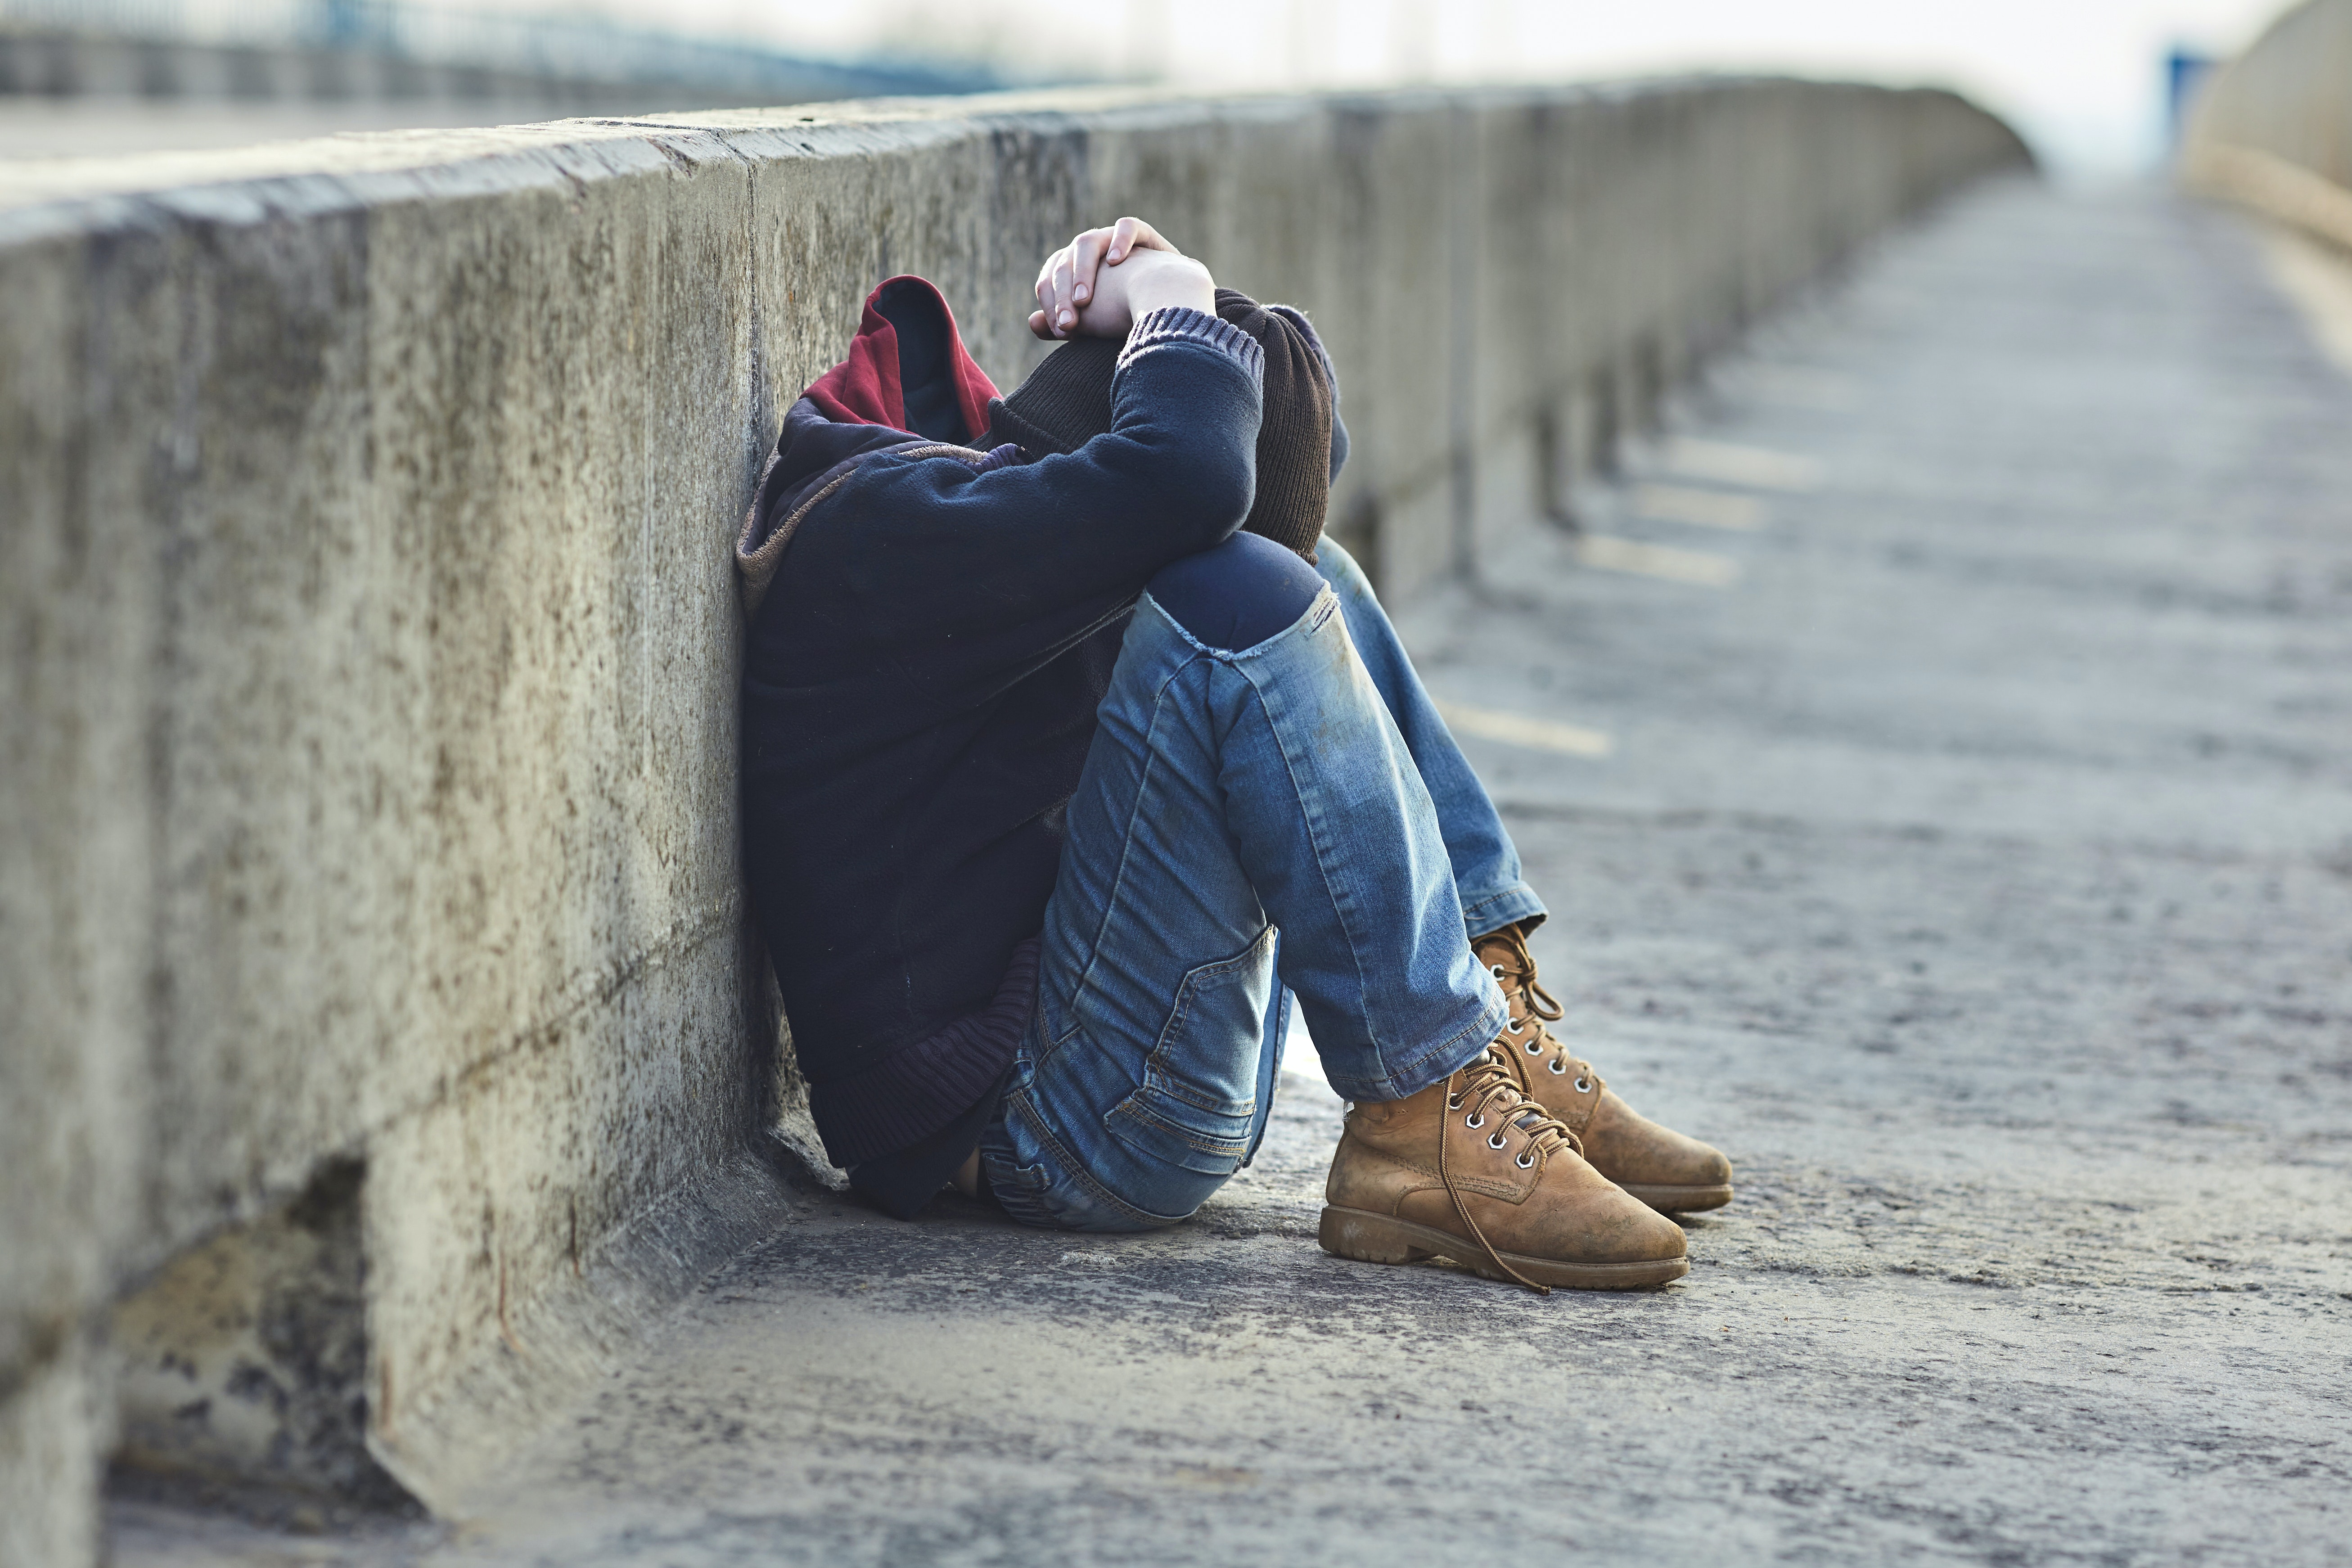 Youth homelessness efforts get a lowly 2 stars from national report card